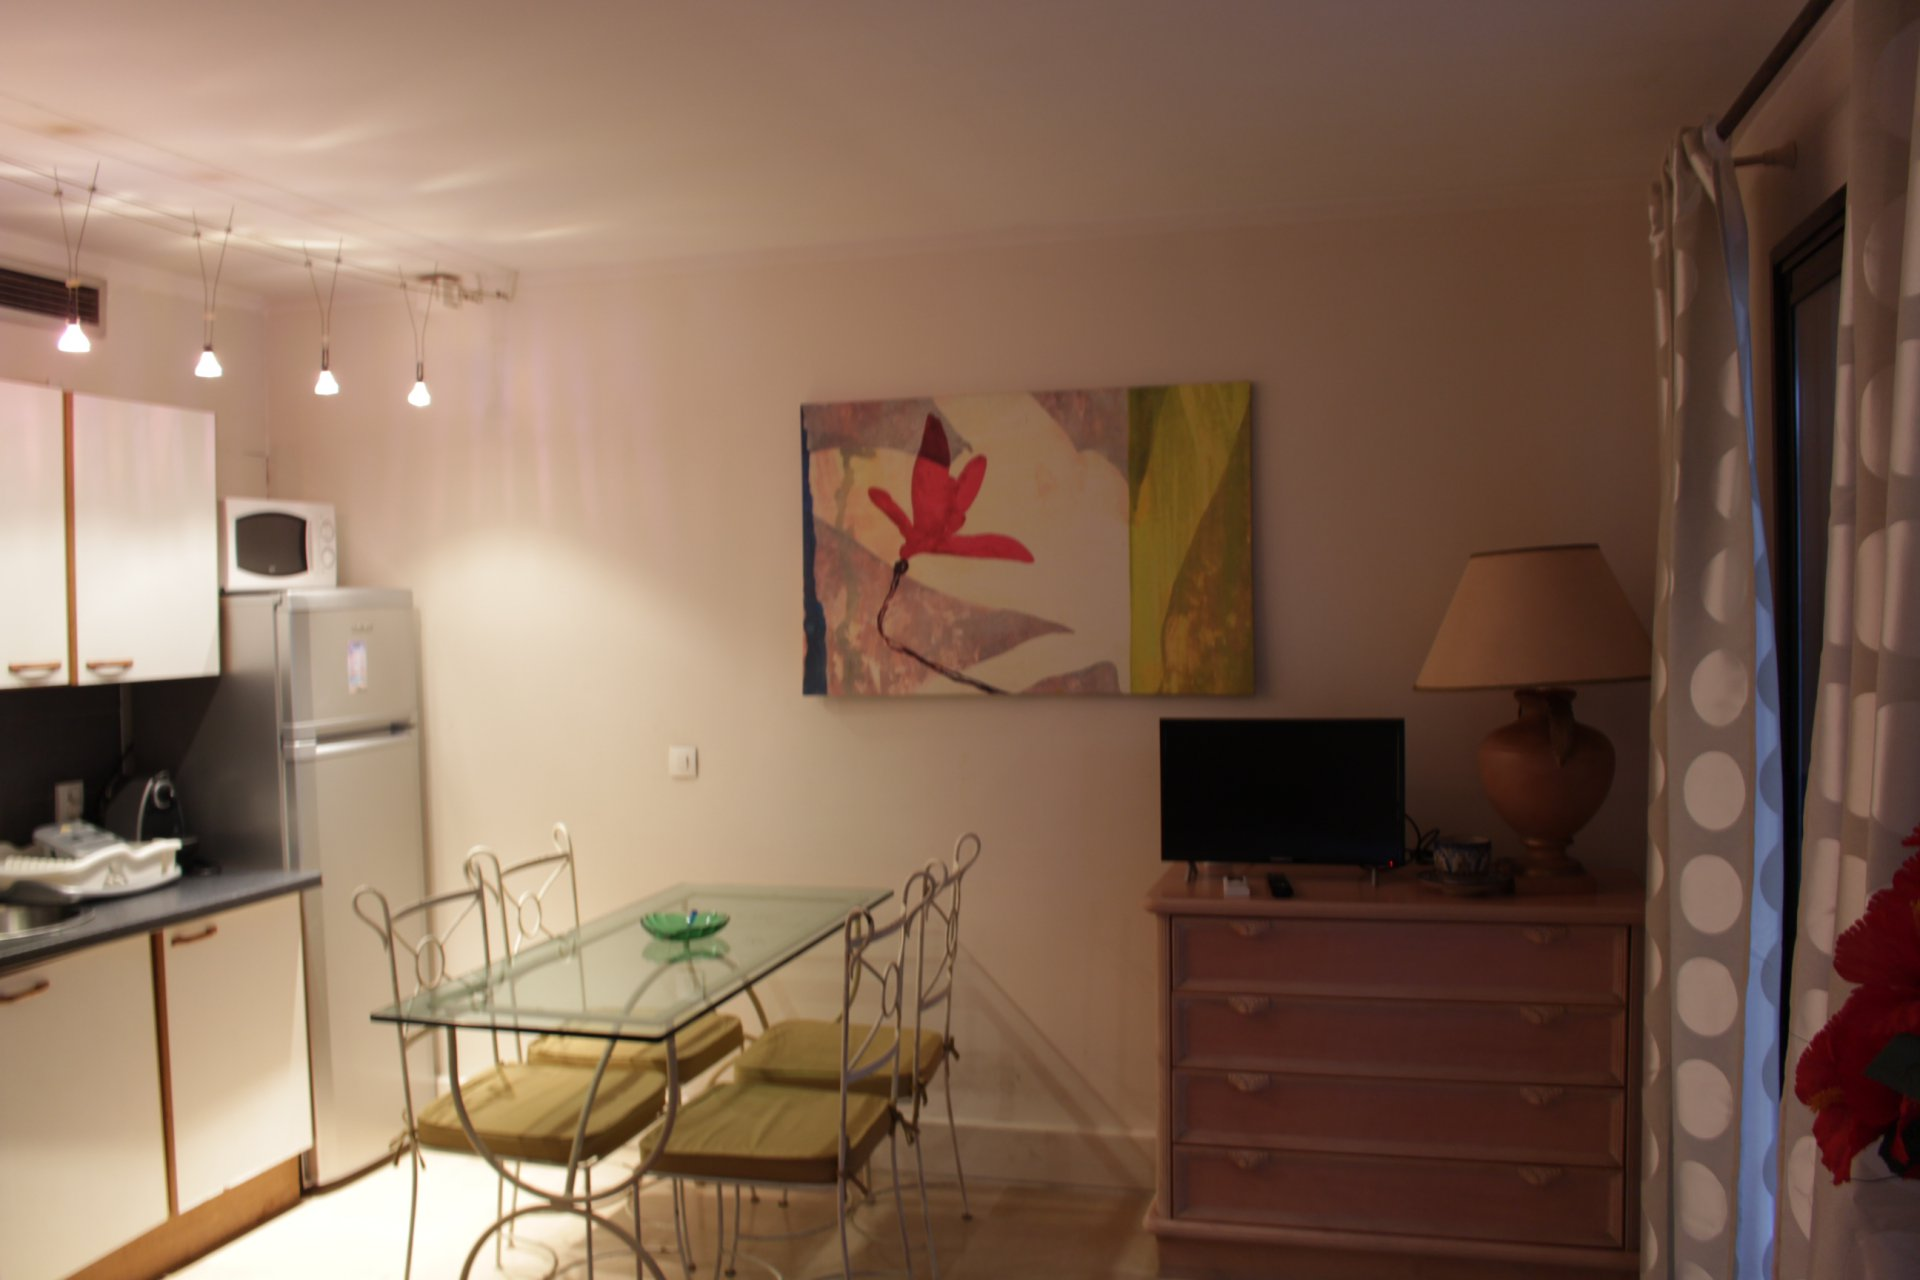 Affitto stagionale Monolocale - Cannes Banane